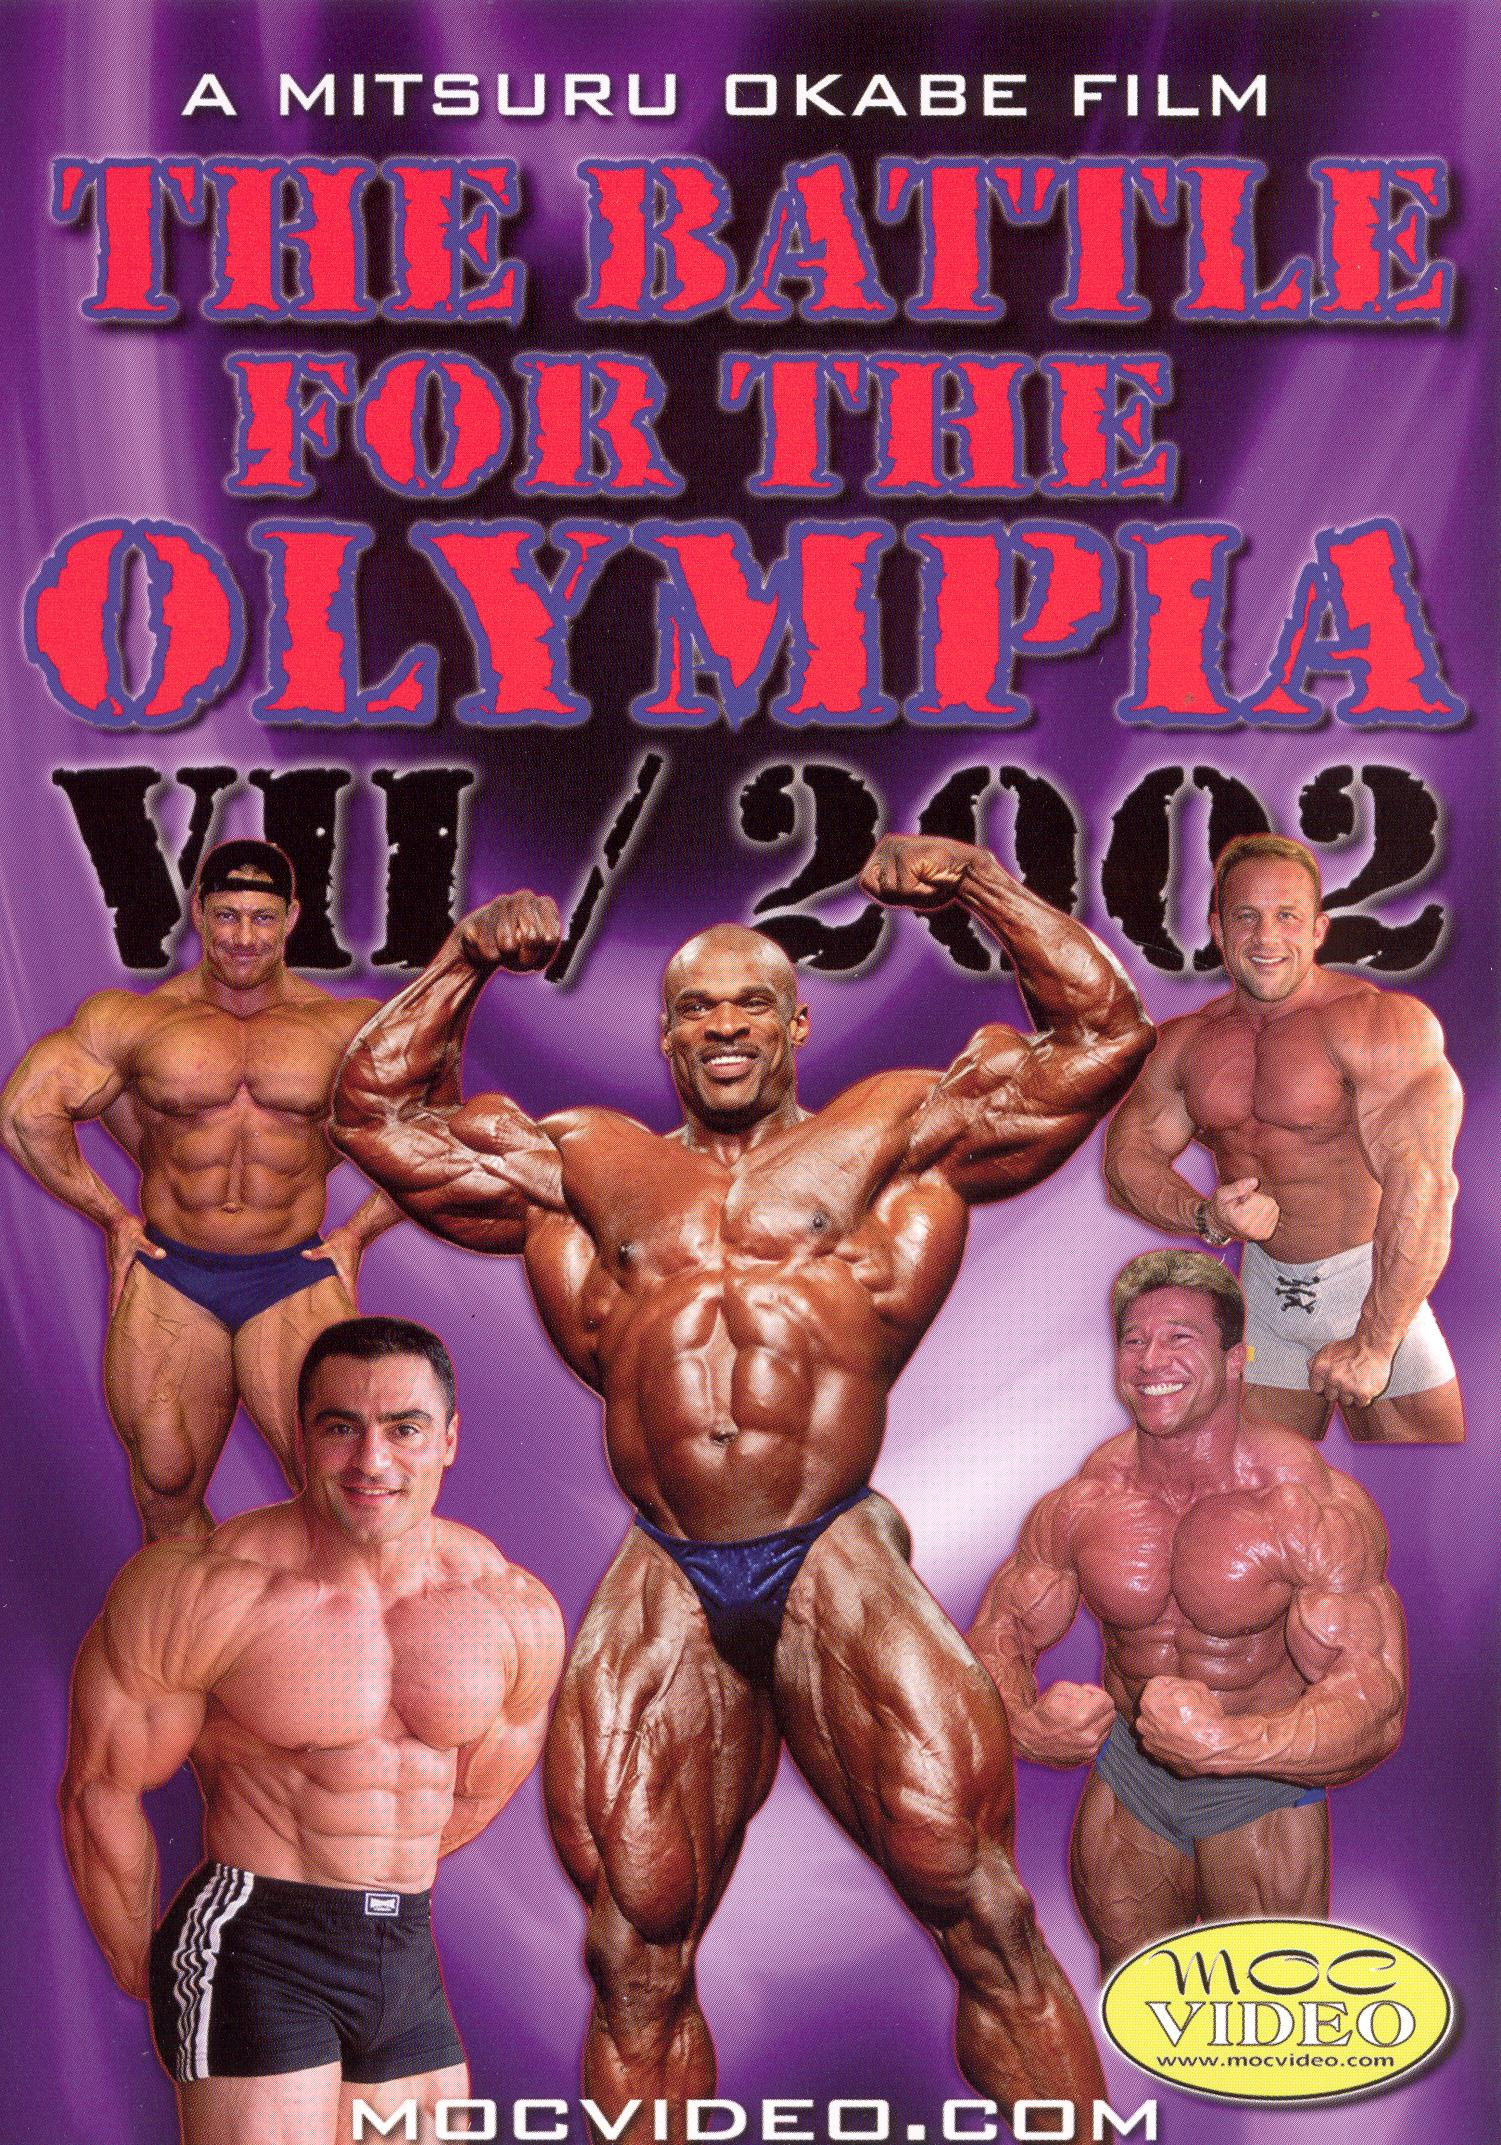 The Battle for the Olympia, Vol. VII - 2002